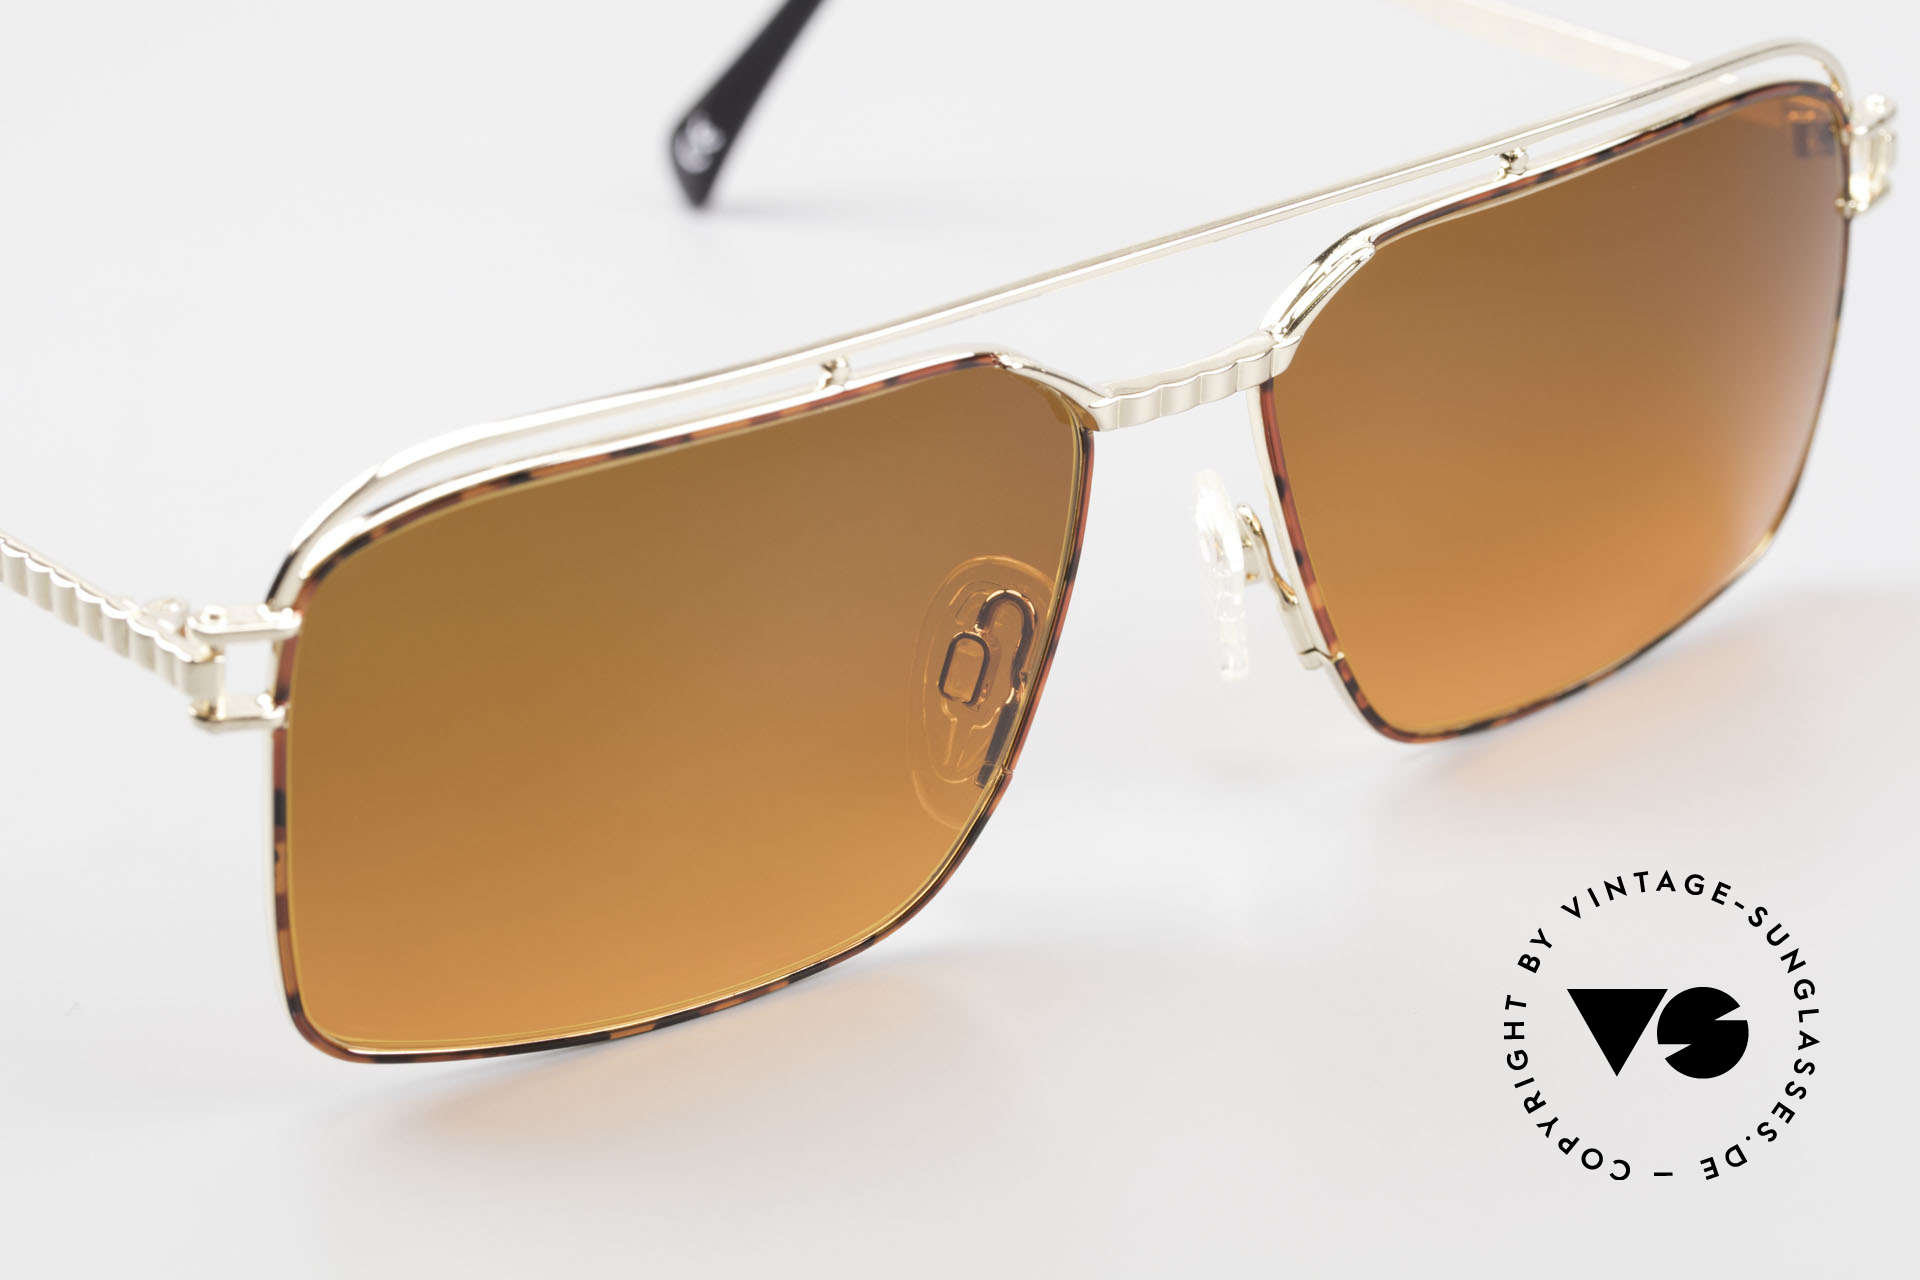 Neostyle Dynasty 424 - L 80's Titanium Men's Shades, NO RETRO SHADES, just a stylish old ORIGINAL, Made for Men